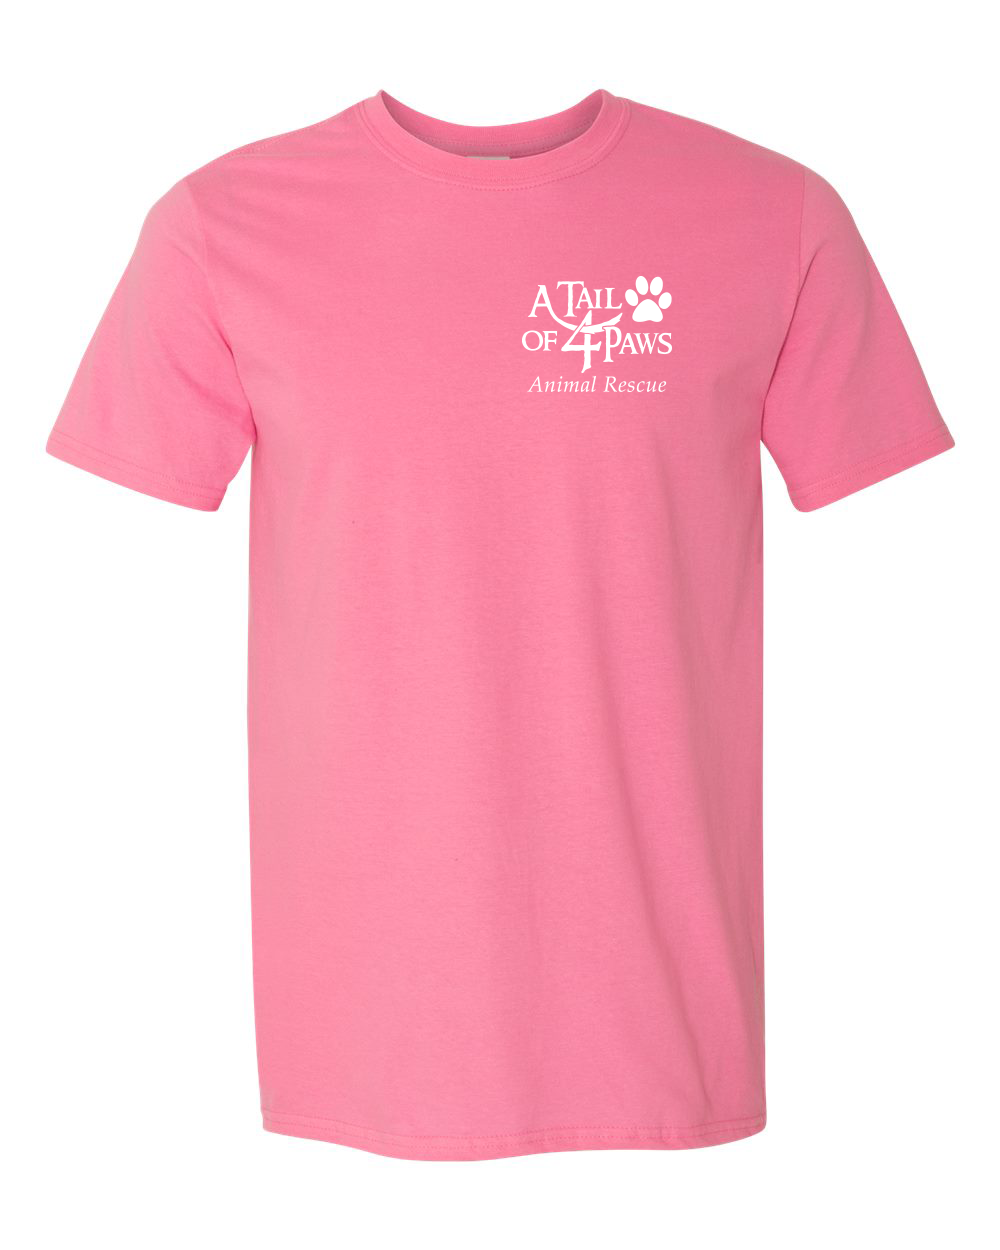 Front of Shirt Pink